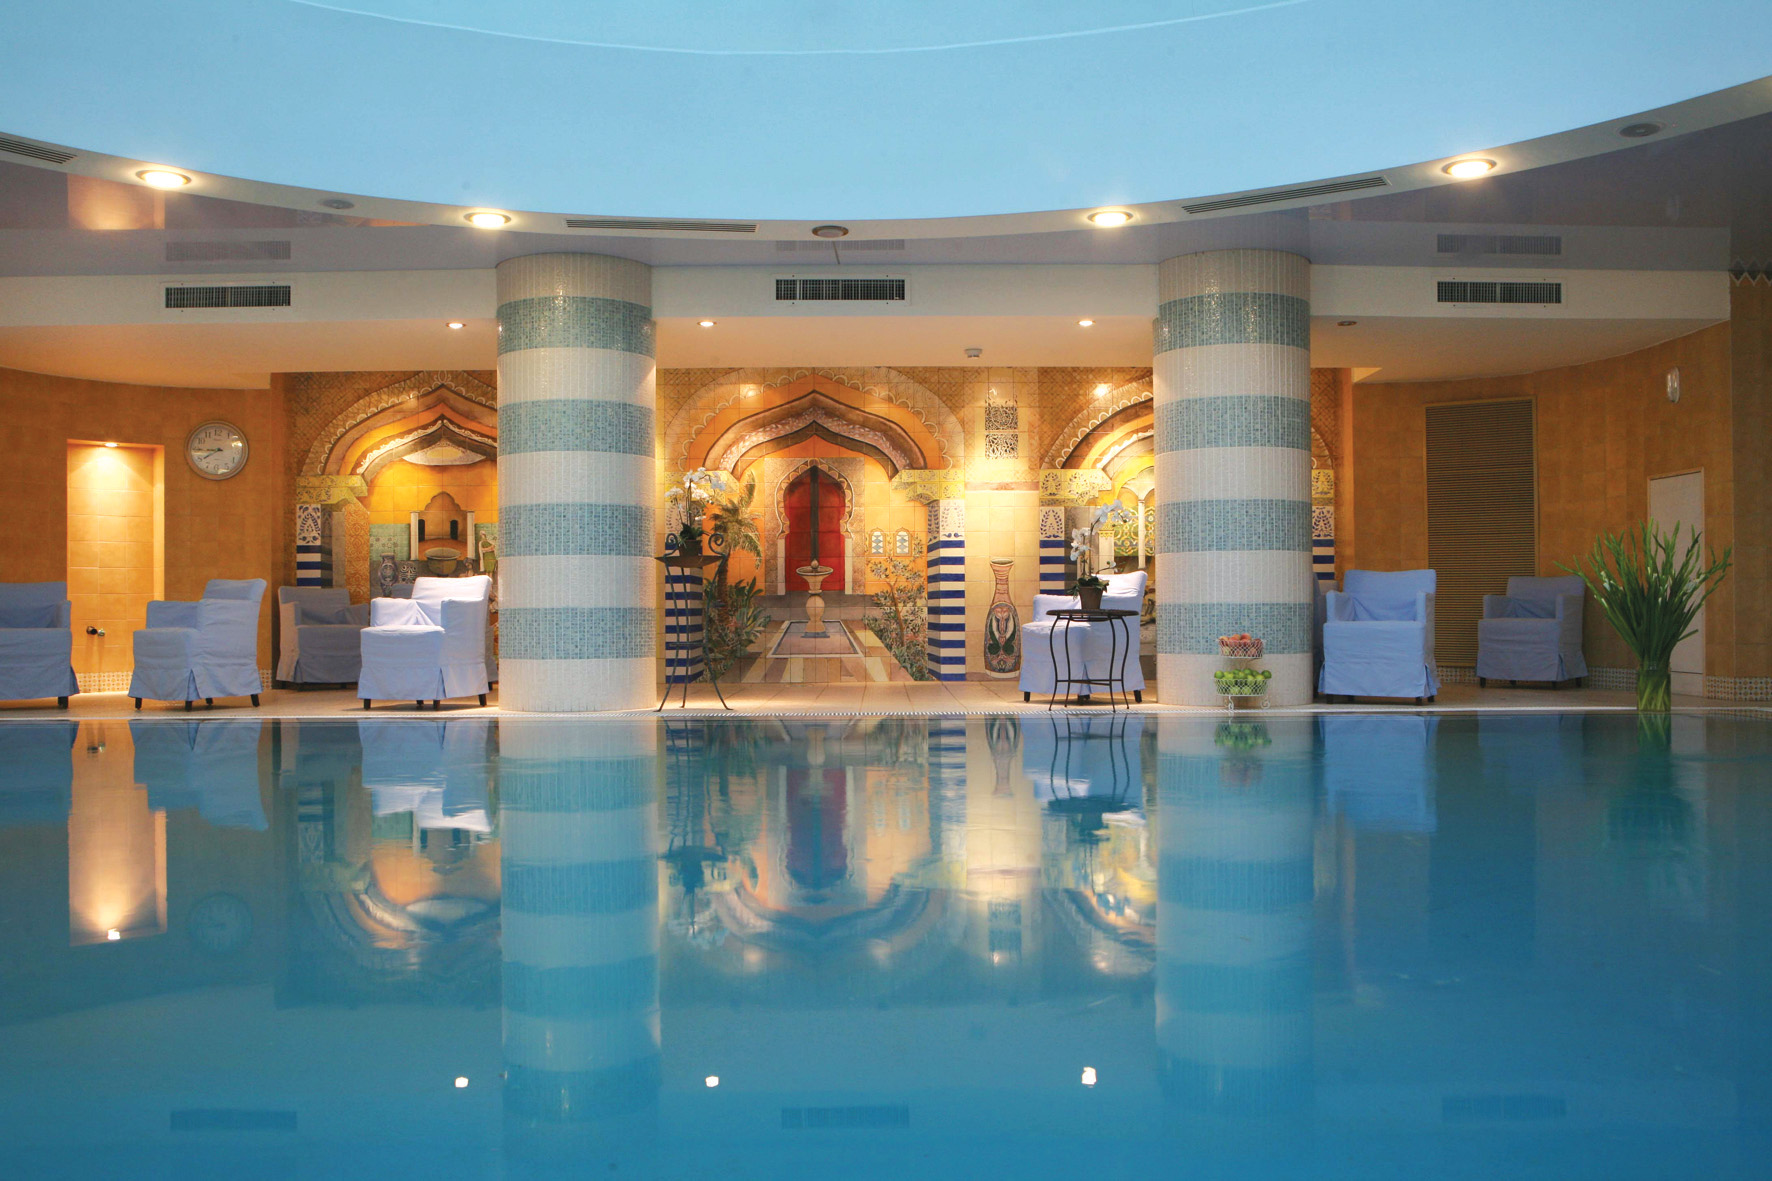 https://www.hotelsbyday.com/_data/default-hotel_image/2/11389/spa-club-spa.jpg